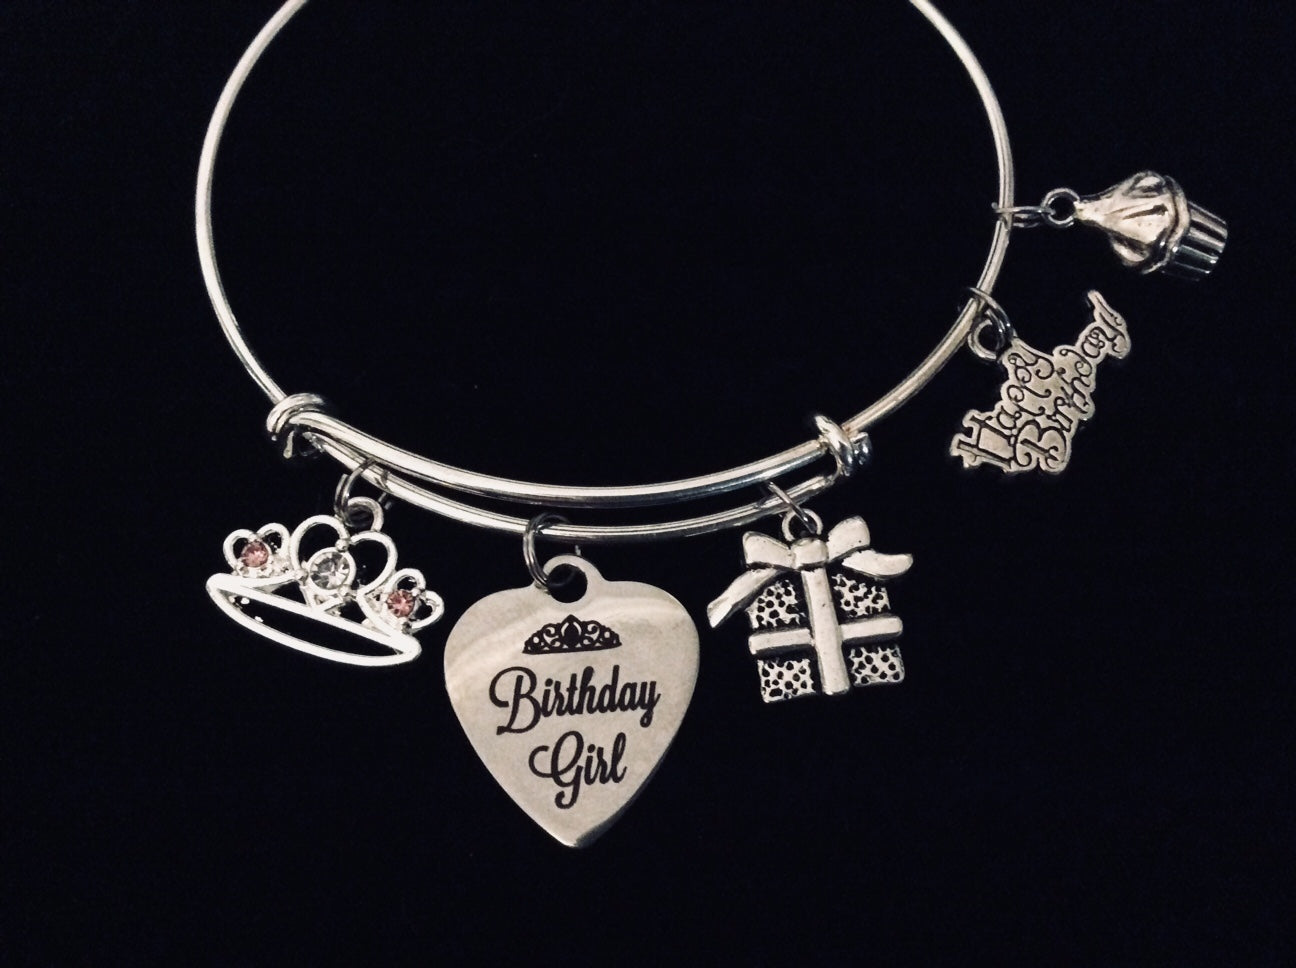 a4ef31f34eef1 Happy Birthday Girl Expandable Charm Bracelet Silver Adjustable Bangle  Trendy One Size Fits All Gift Princess Tiara Present Cupcake